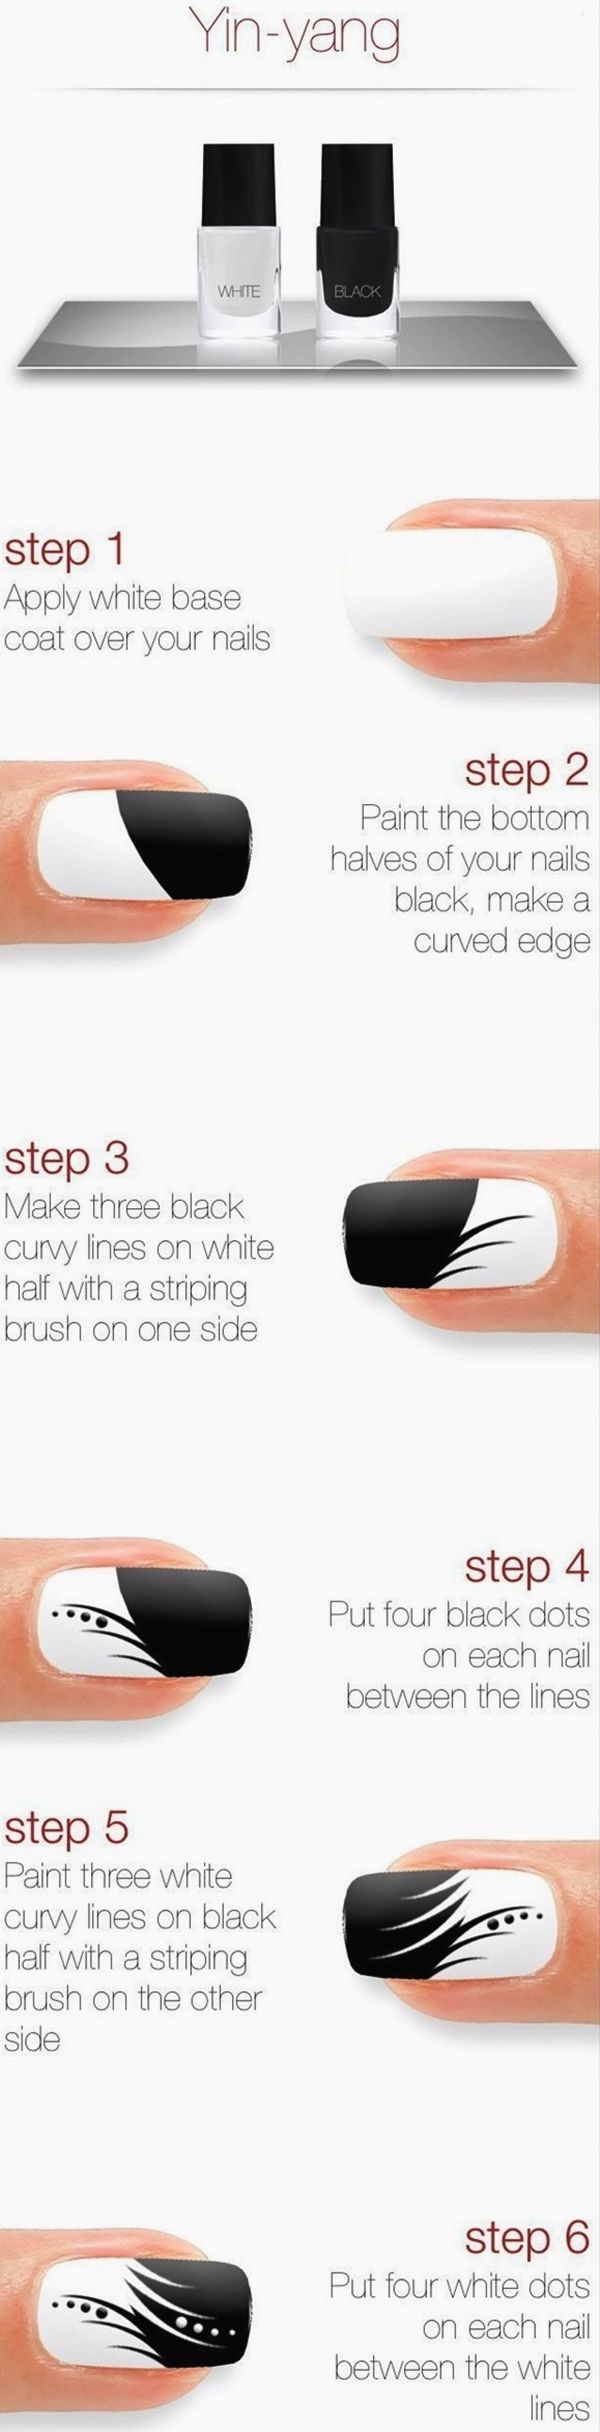 101 Easy Nail Art Ideas and Designs for Beginners | Easy nail art ...